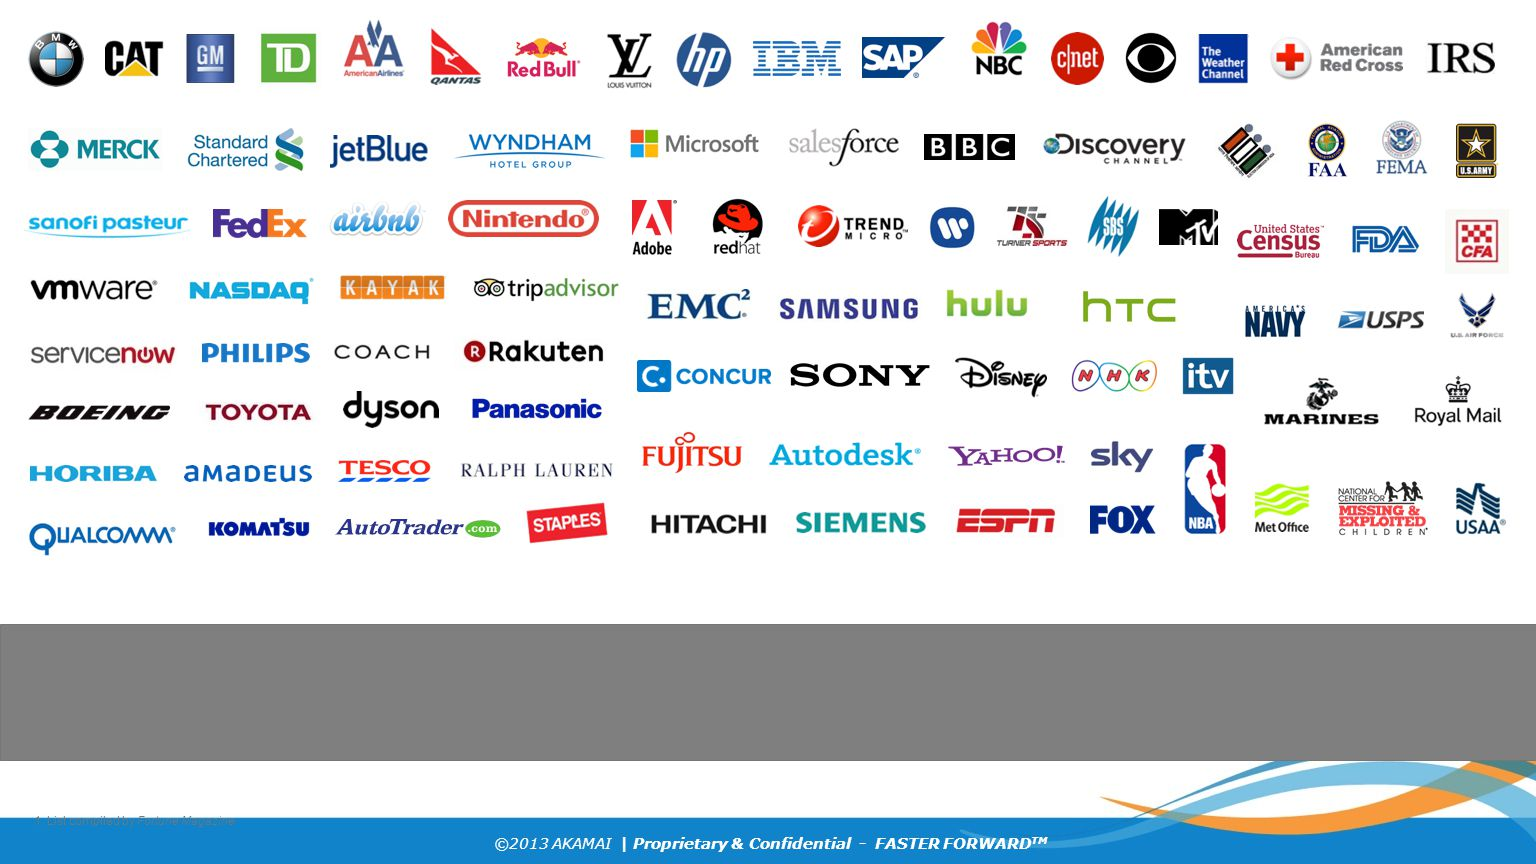 ©2013 AKAMAI | Proprietary & Confidential - FASTER FORWARD TM 1. List compiled by Fortune Magazine